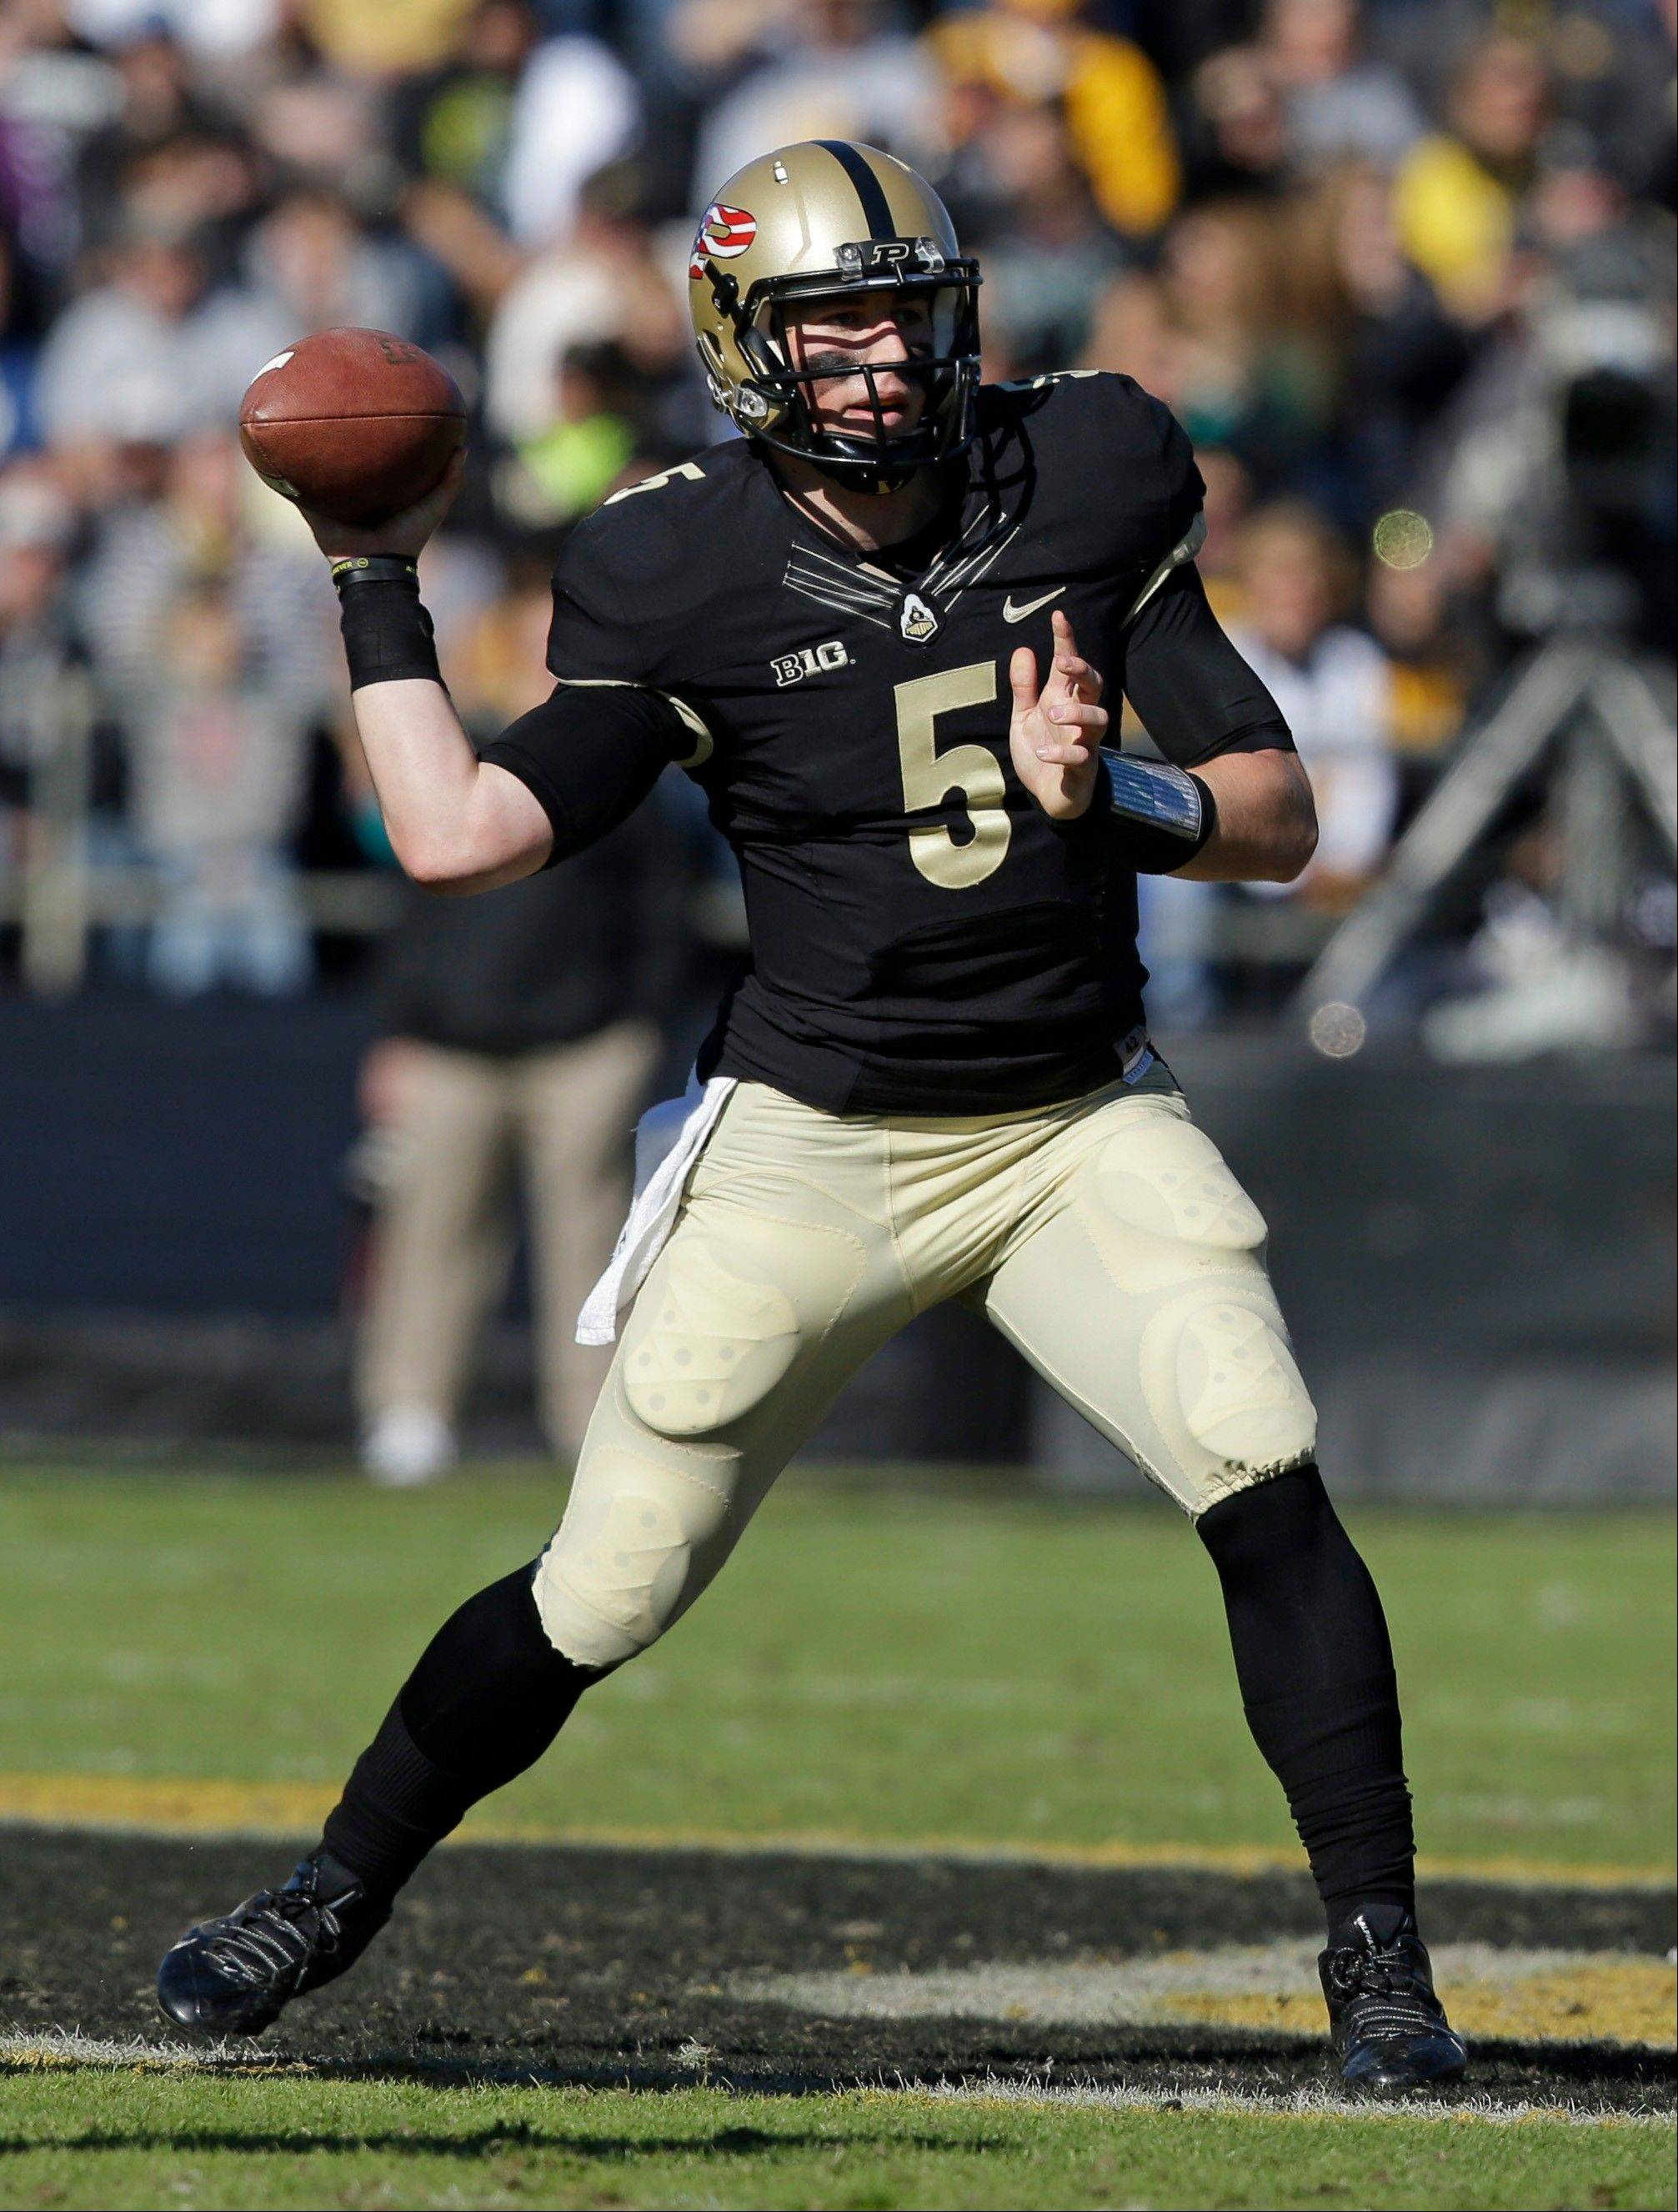 Purdue quarterback Danny Etling throws against Iowa Saturday during the first half in West Lafayette, Ind.